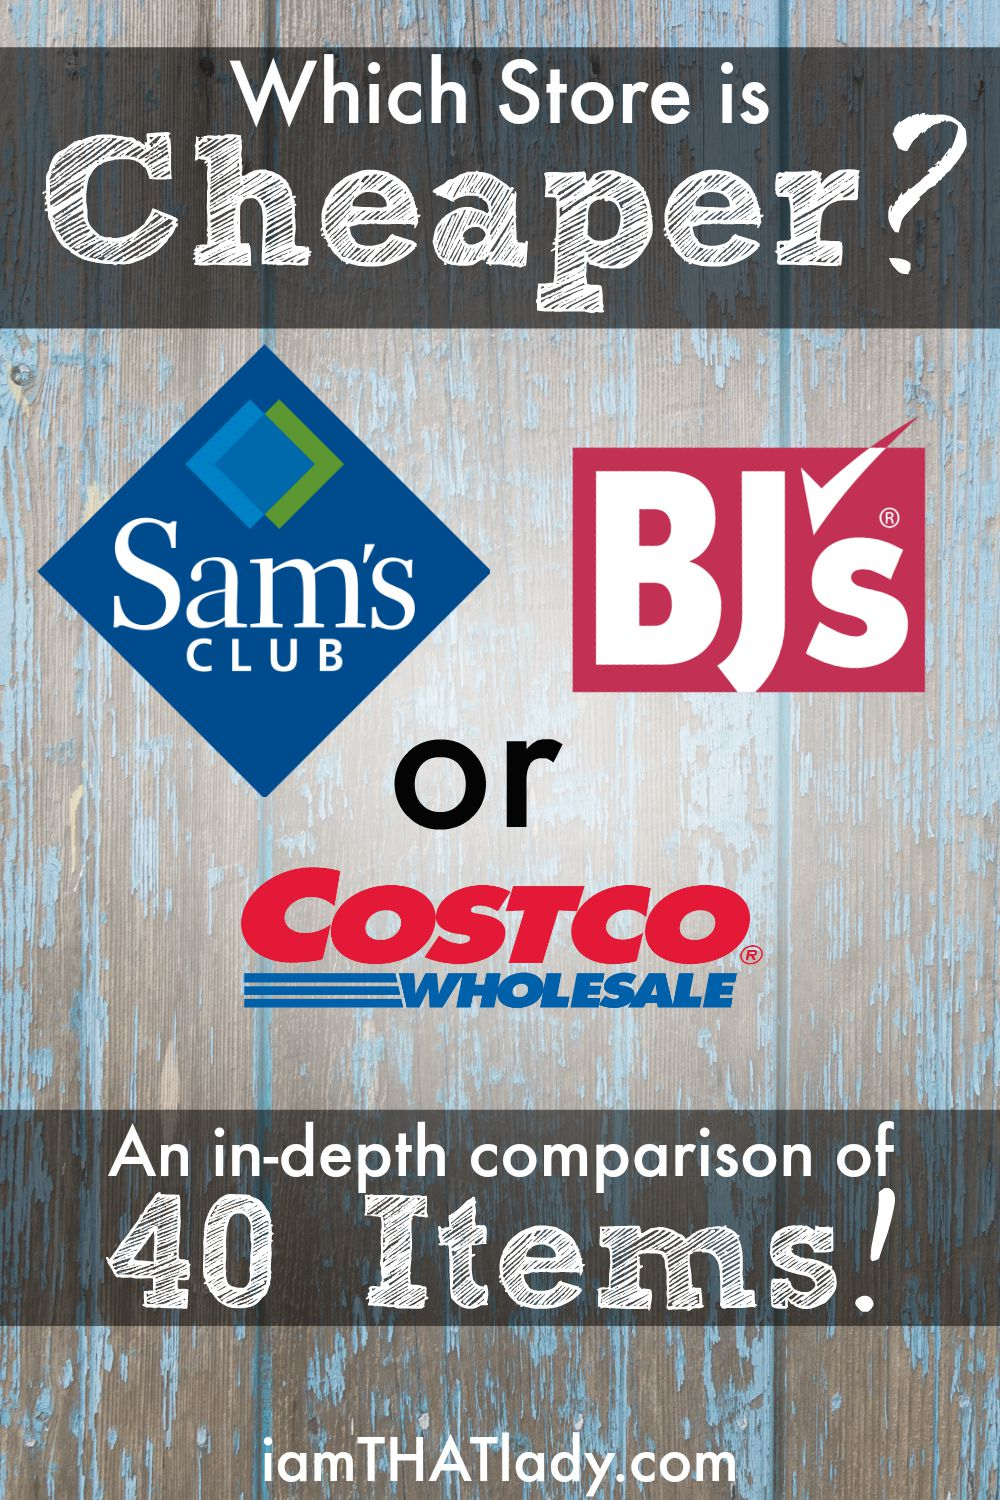 Turbotax Home And Business 2020 Costco.Costco Vs Sam S Vs Bj S Price Comparison Of 40 Household